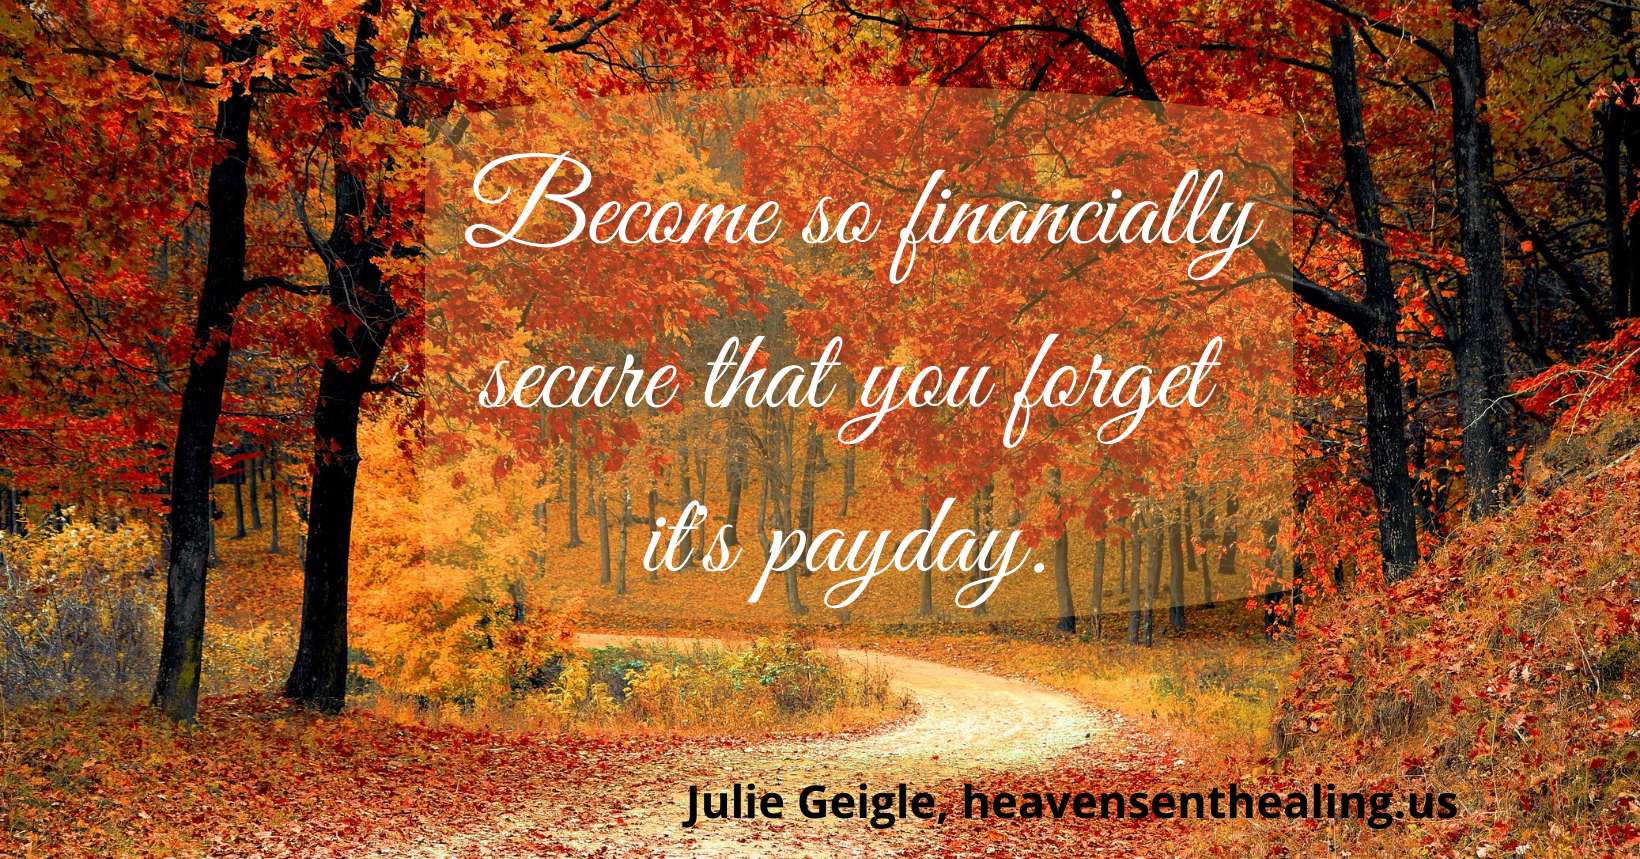 10-4-21 financially secure quote